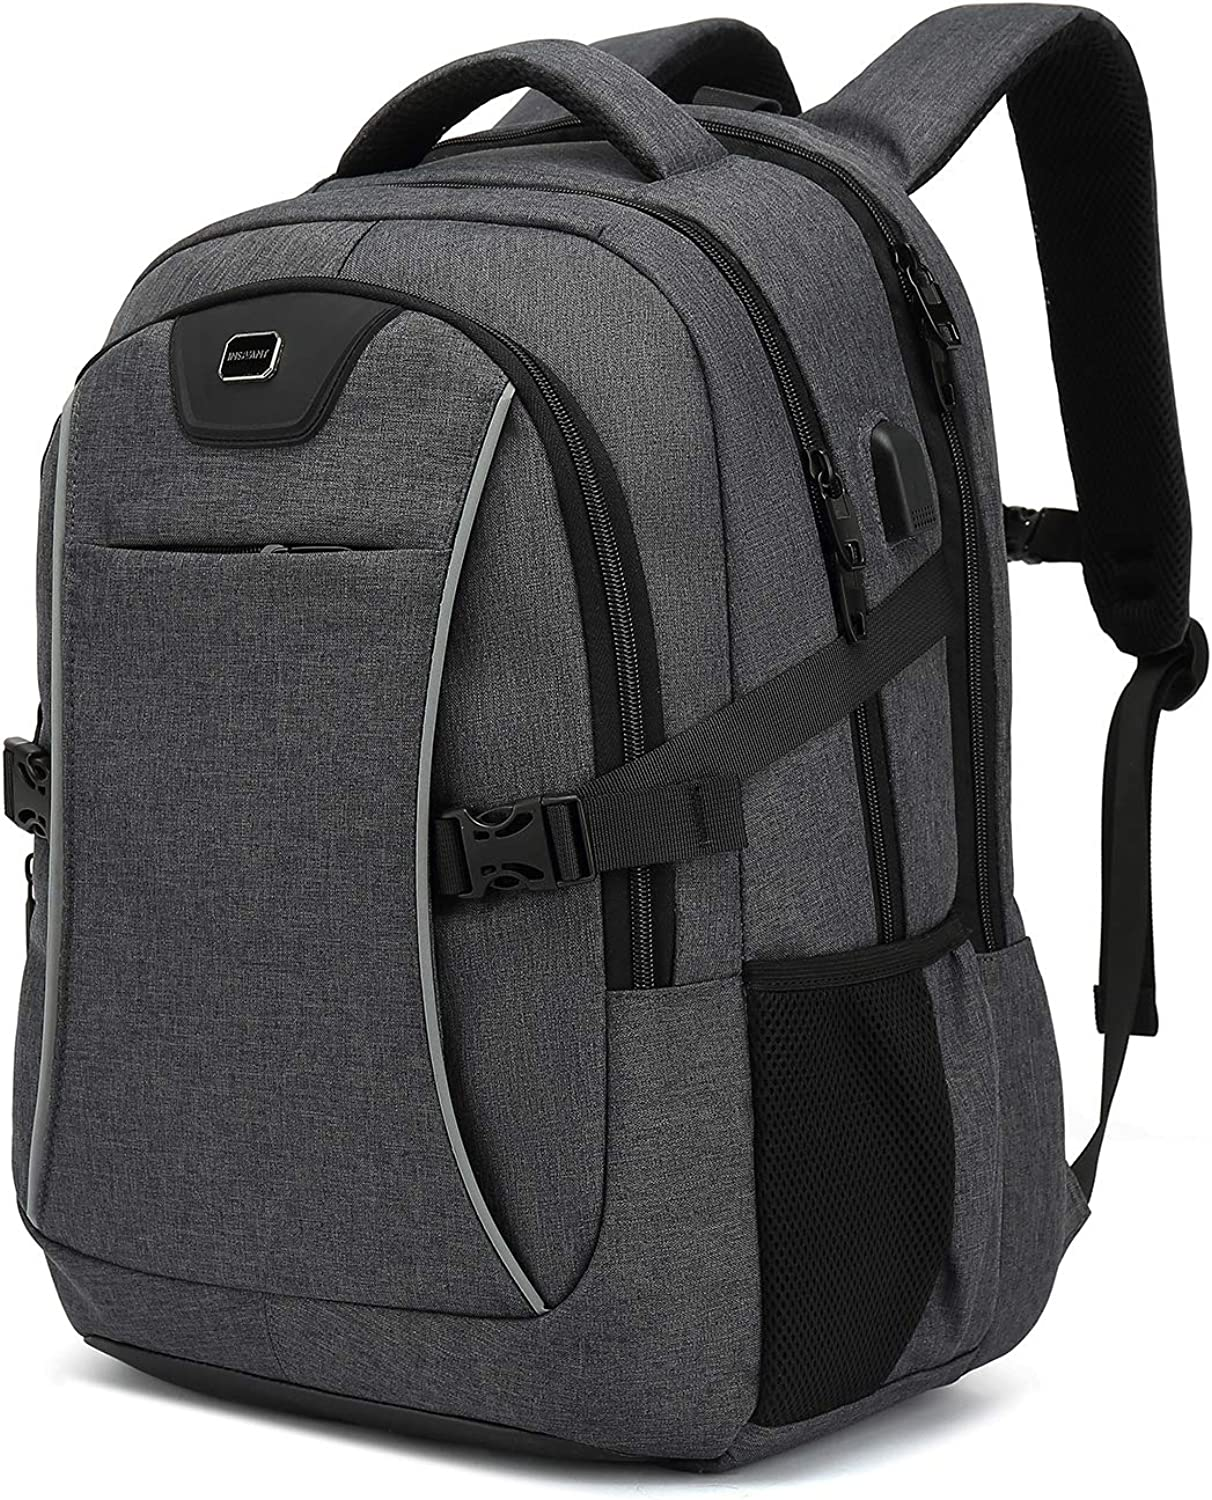 Laptop Backpack Travel Backpacks Hiking Daypack